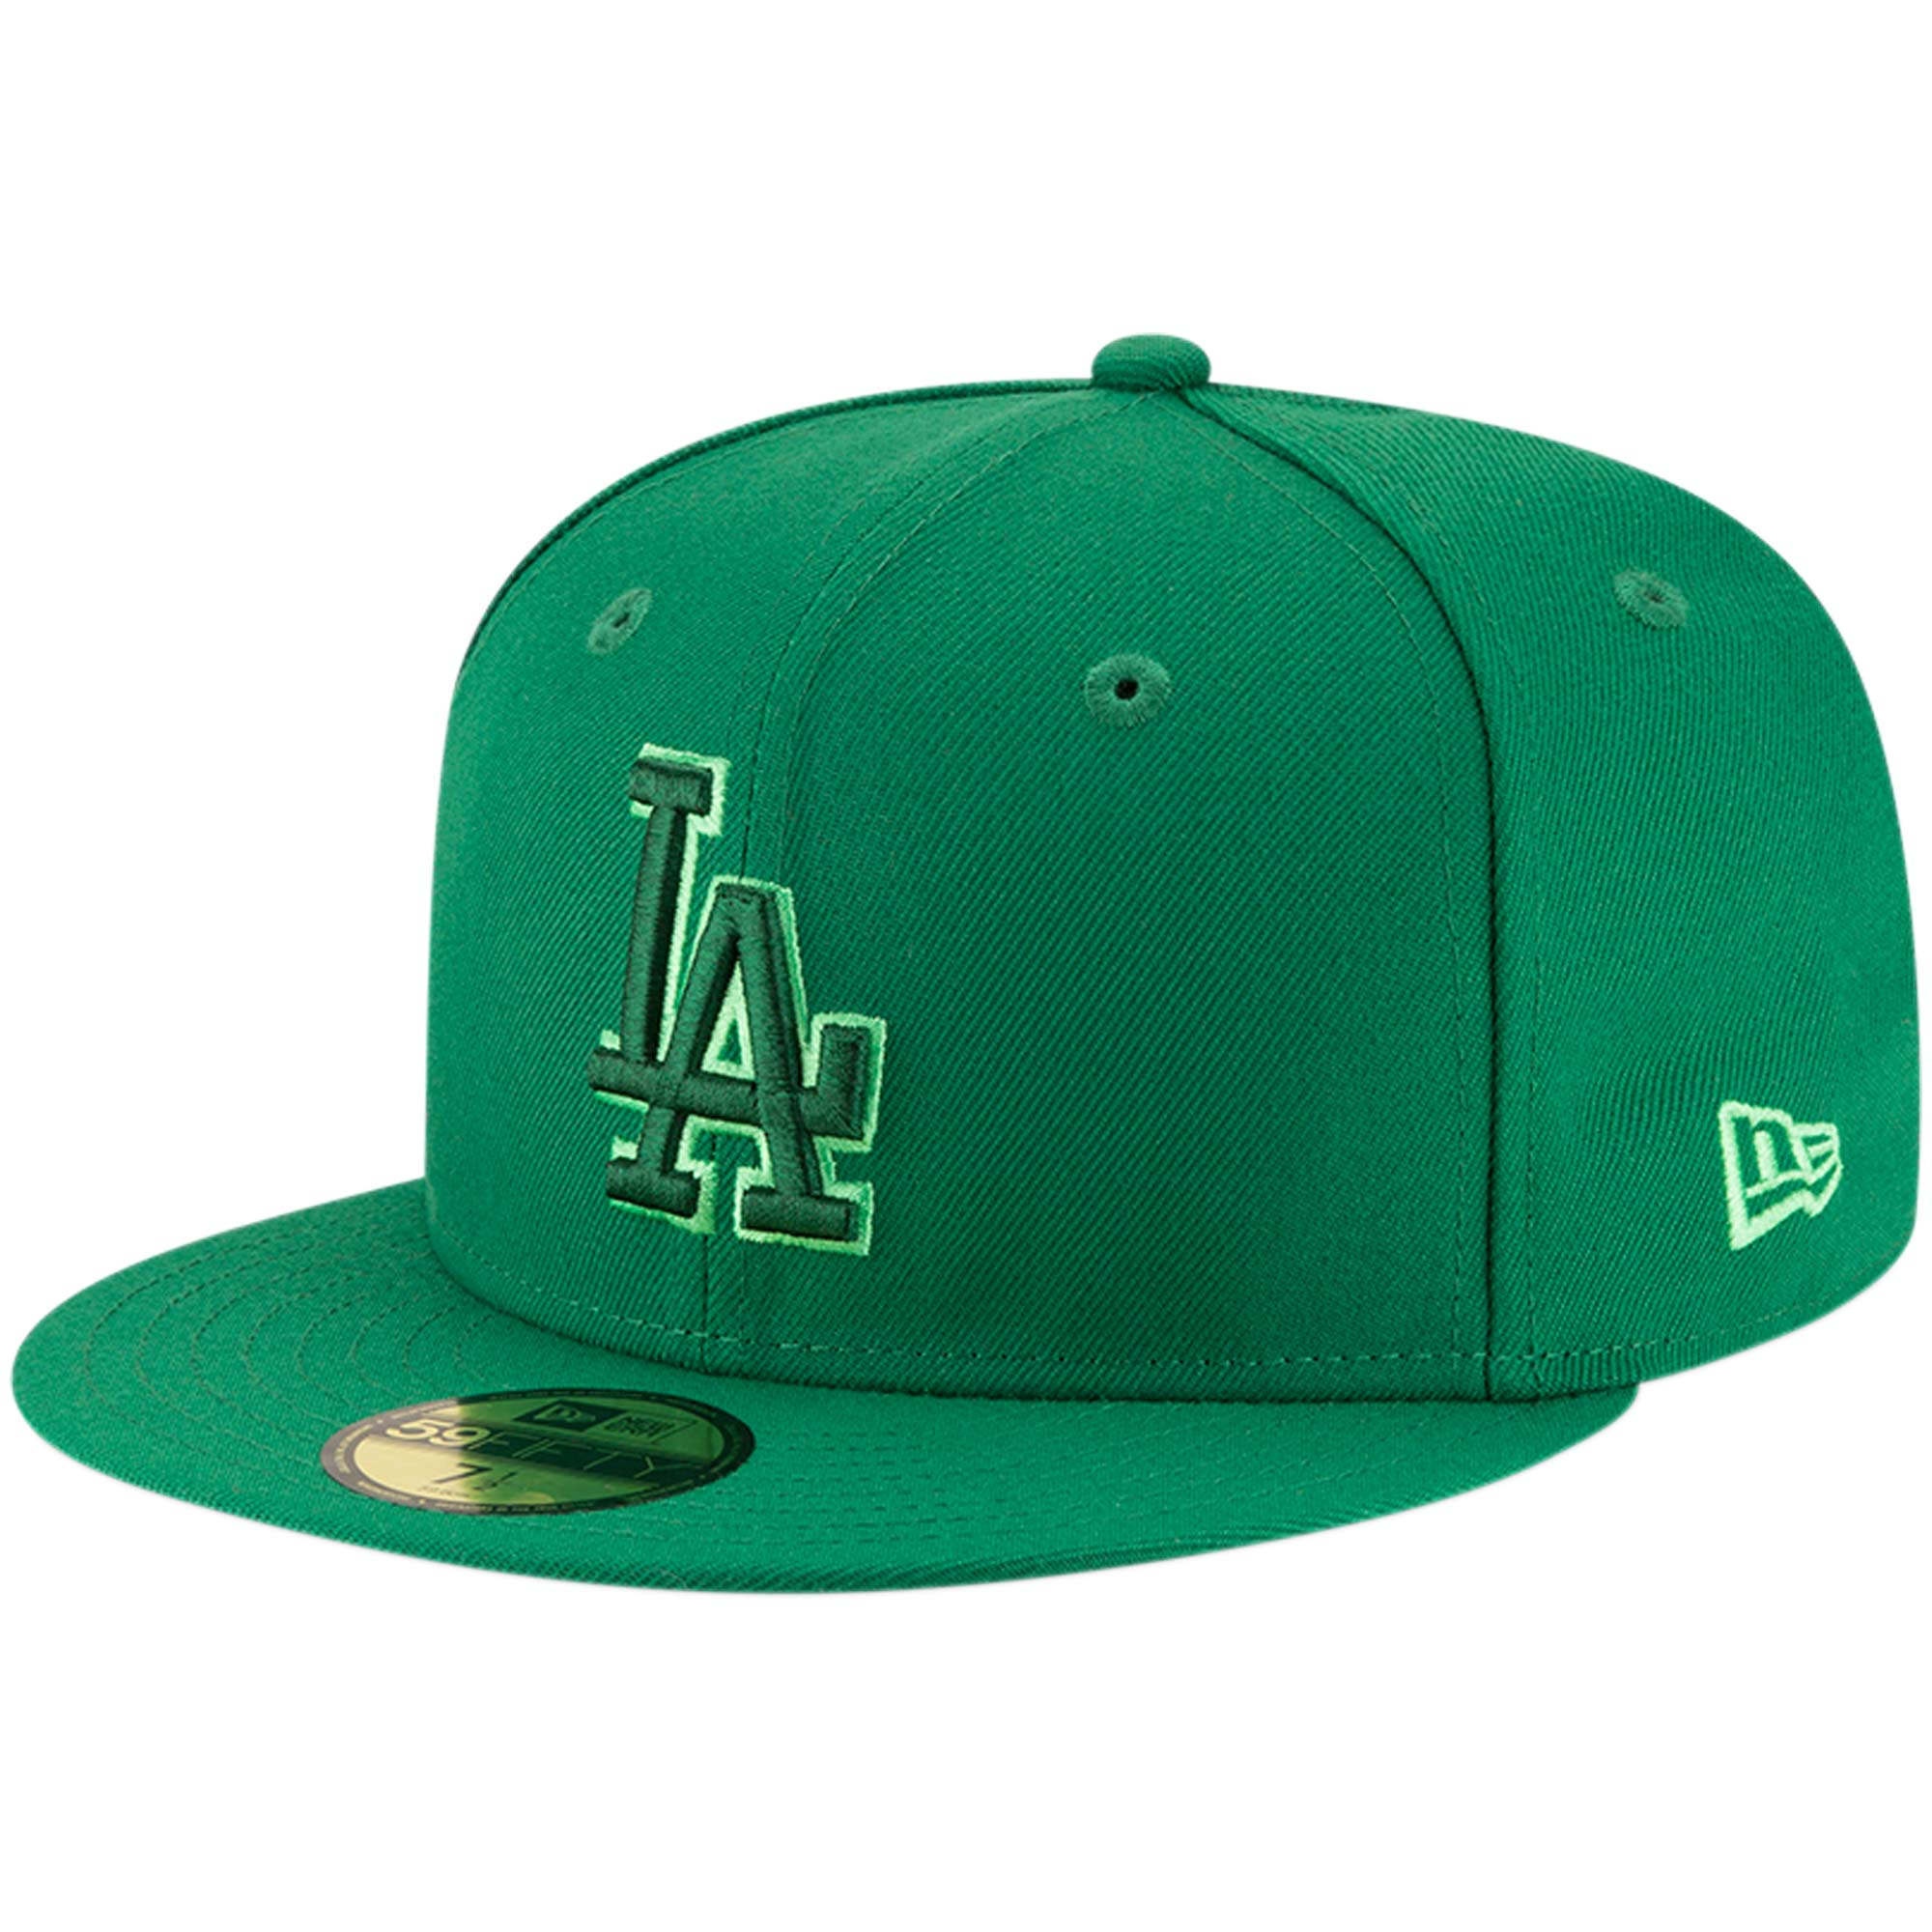 Los Angeles Dodgers New Era League Pop 59FIFTY Fitted Hat - Green